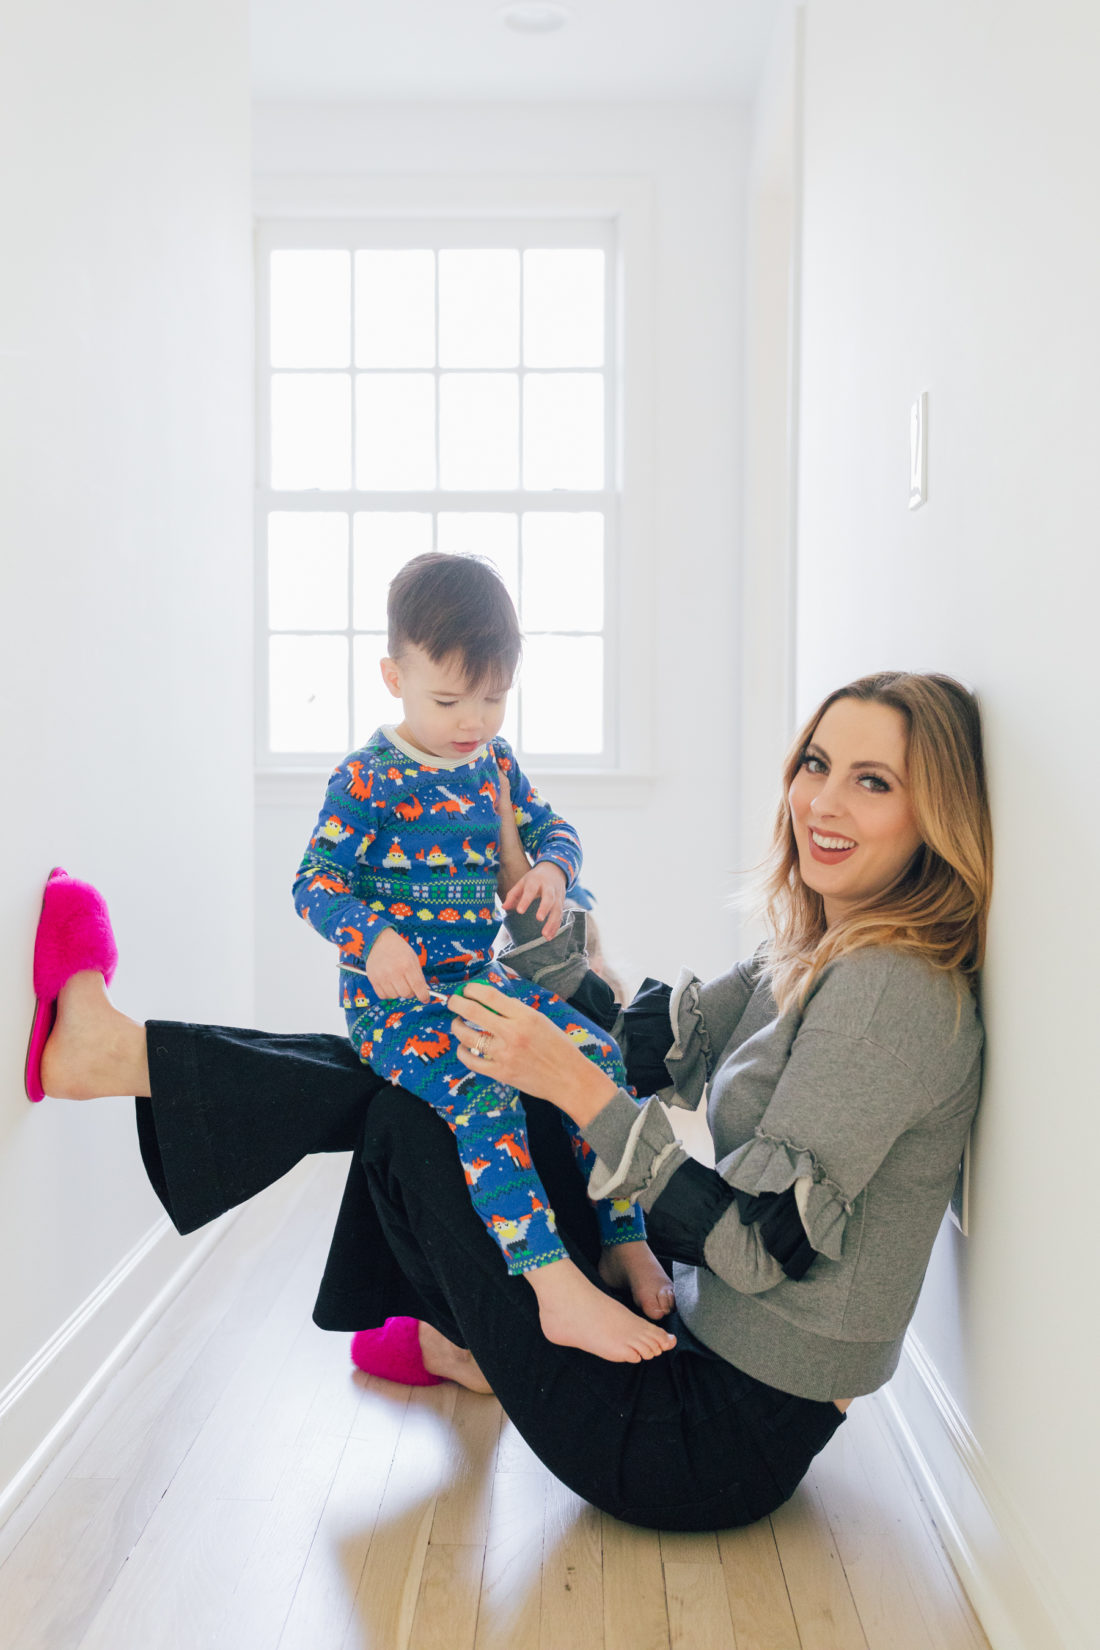 Eva Amurri Martino and her son Major wears printed pajamas while entertaining himself at home